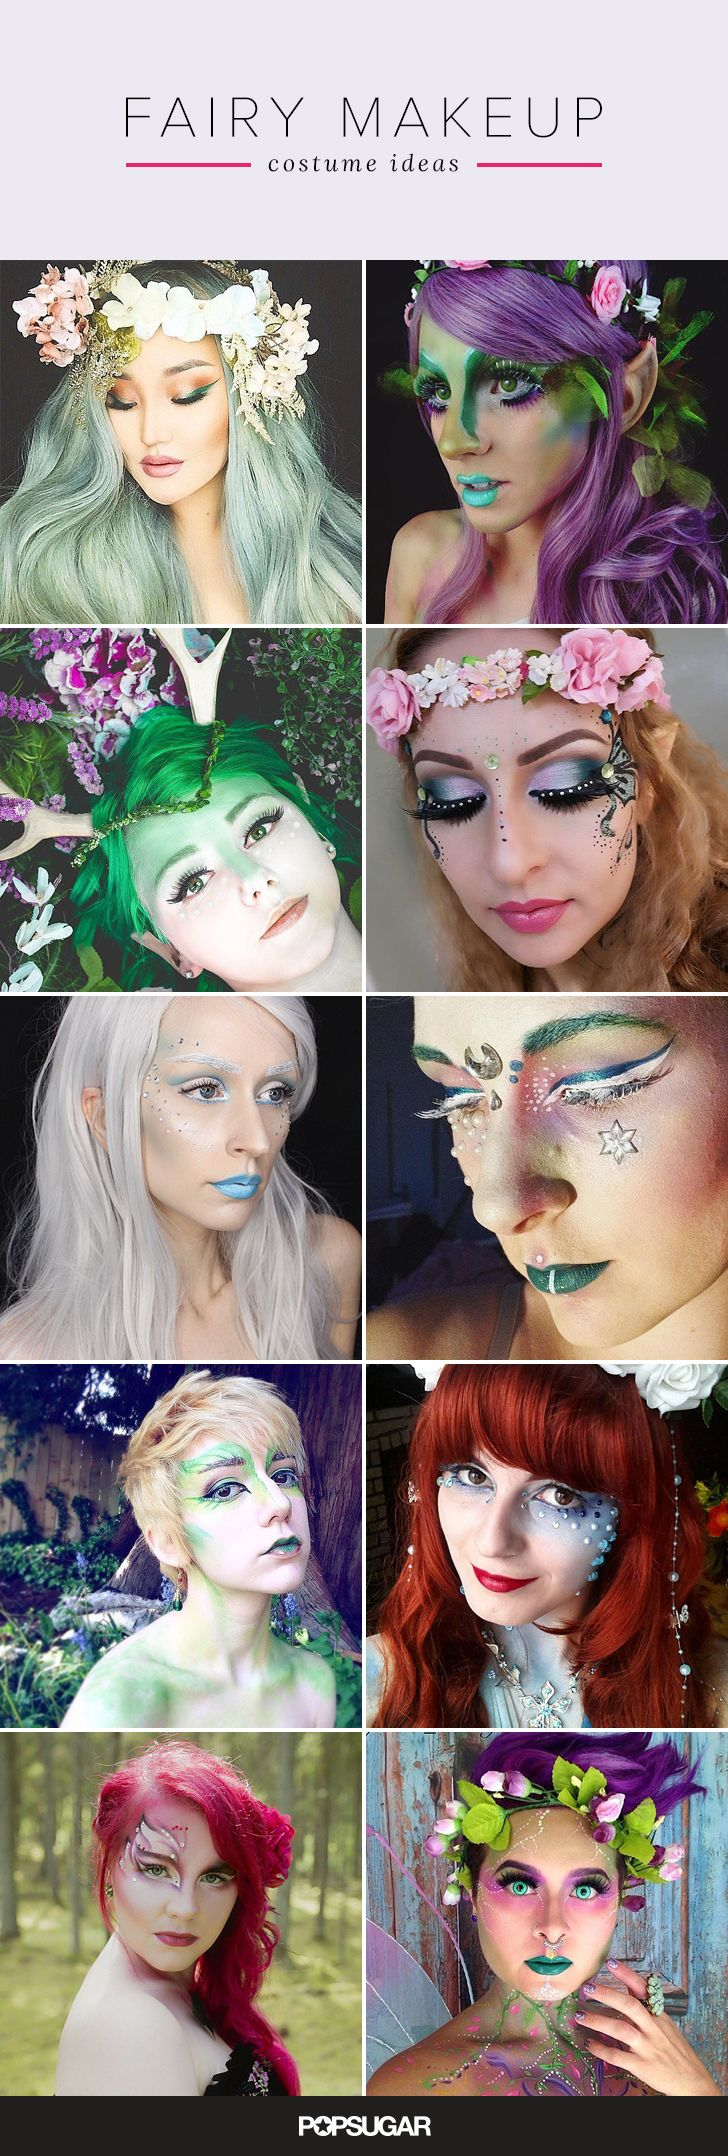 25 Ethereal Makeup Transformations to DIY Your Halloween 'Fairy' Tale